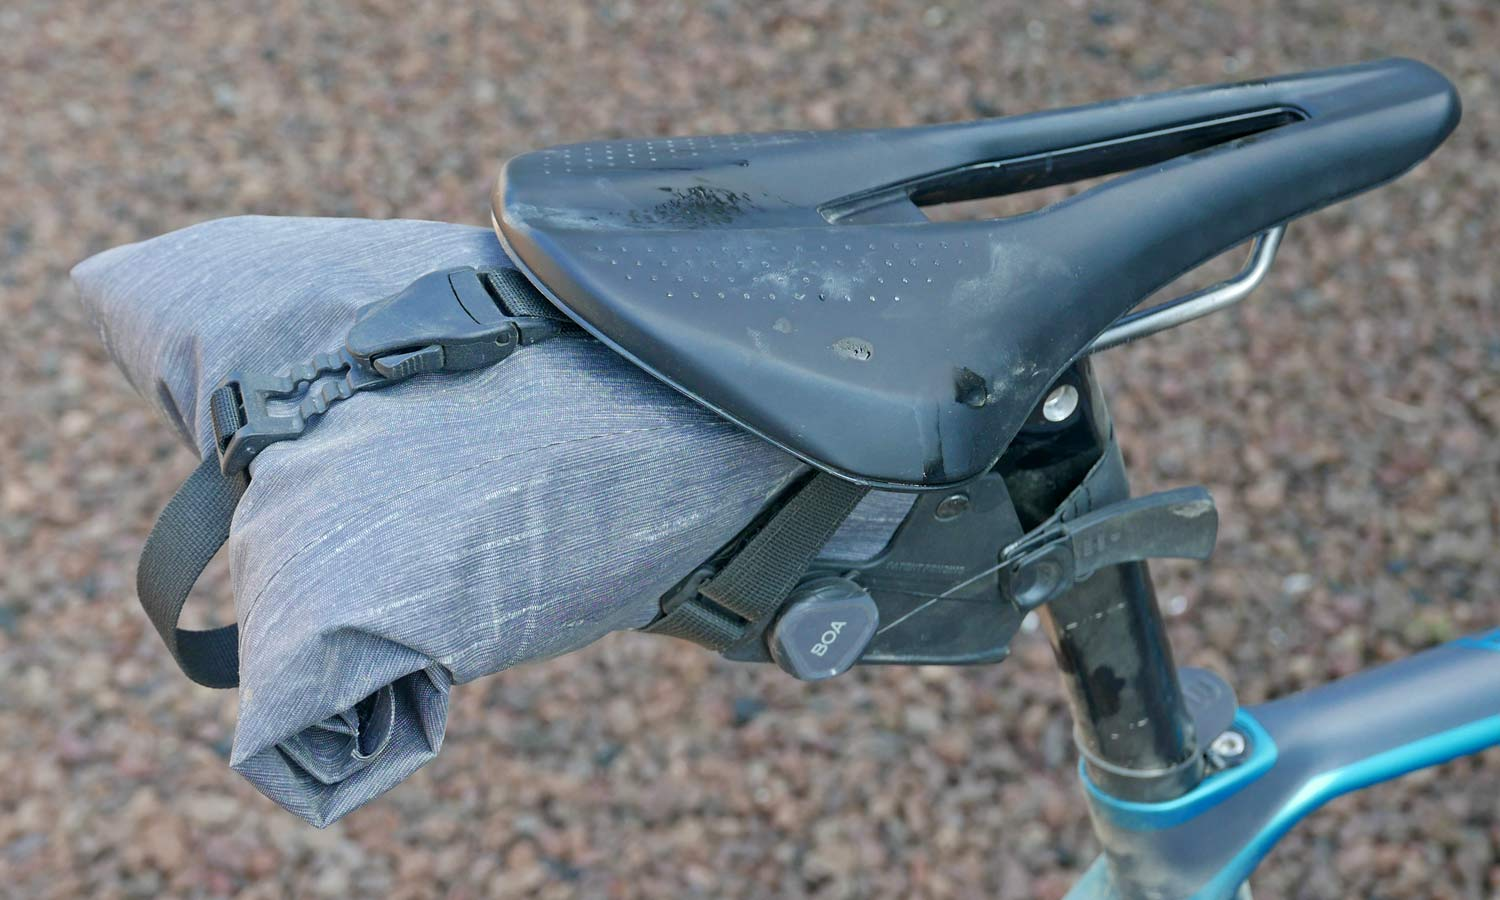 EVOC Bikepacking bags review, off-road riding MTB gravel adventure packs with Boa dial mounts